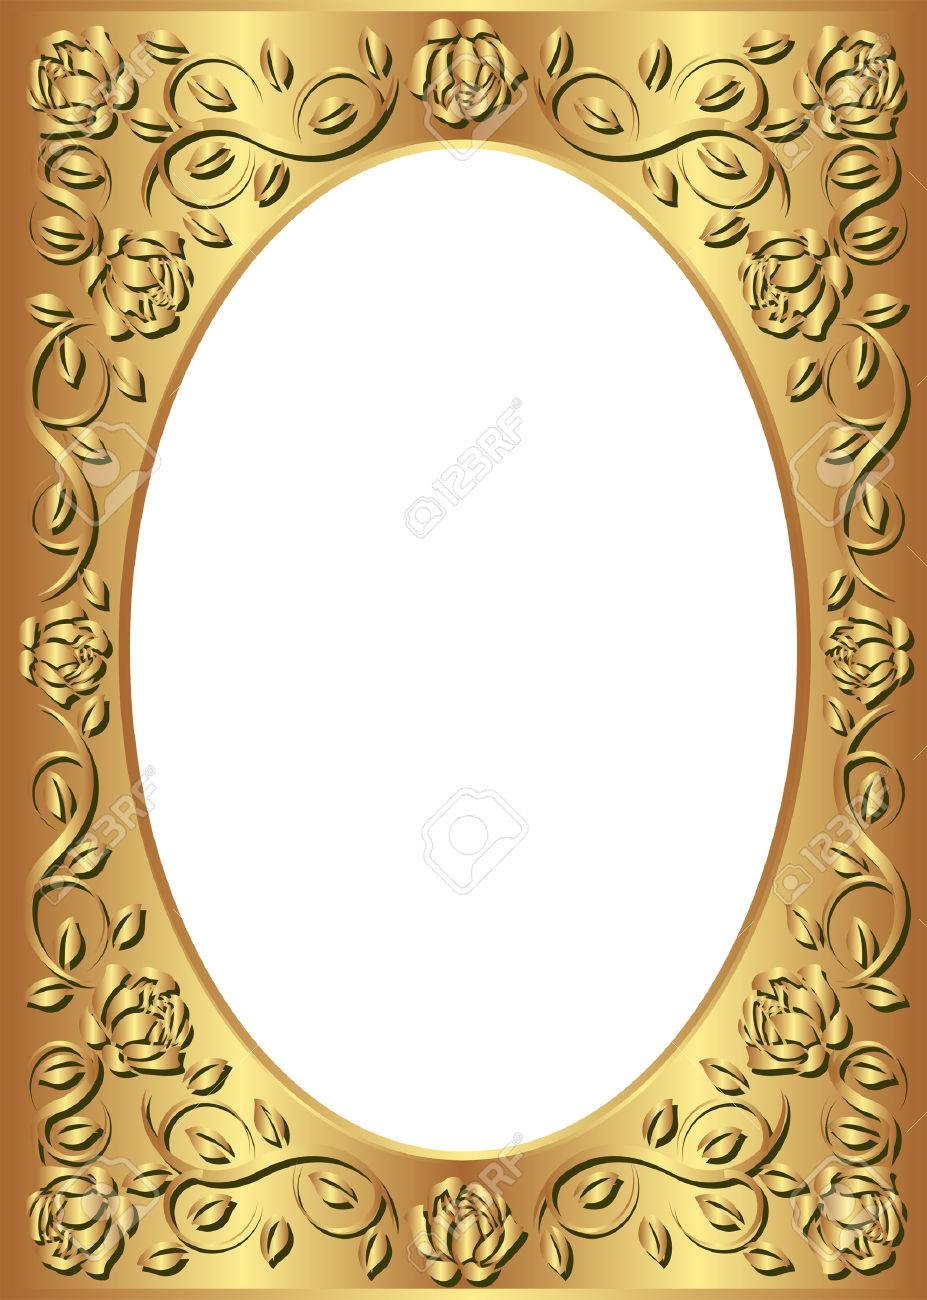 Golden Frame With Floral Border And Transparent Space Insert Stock Vector